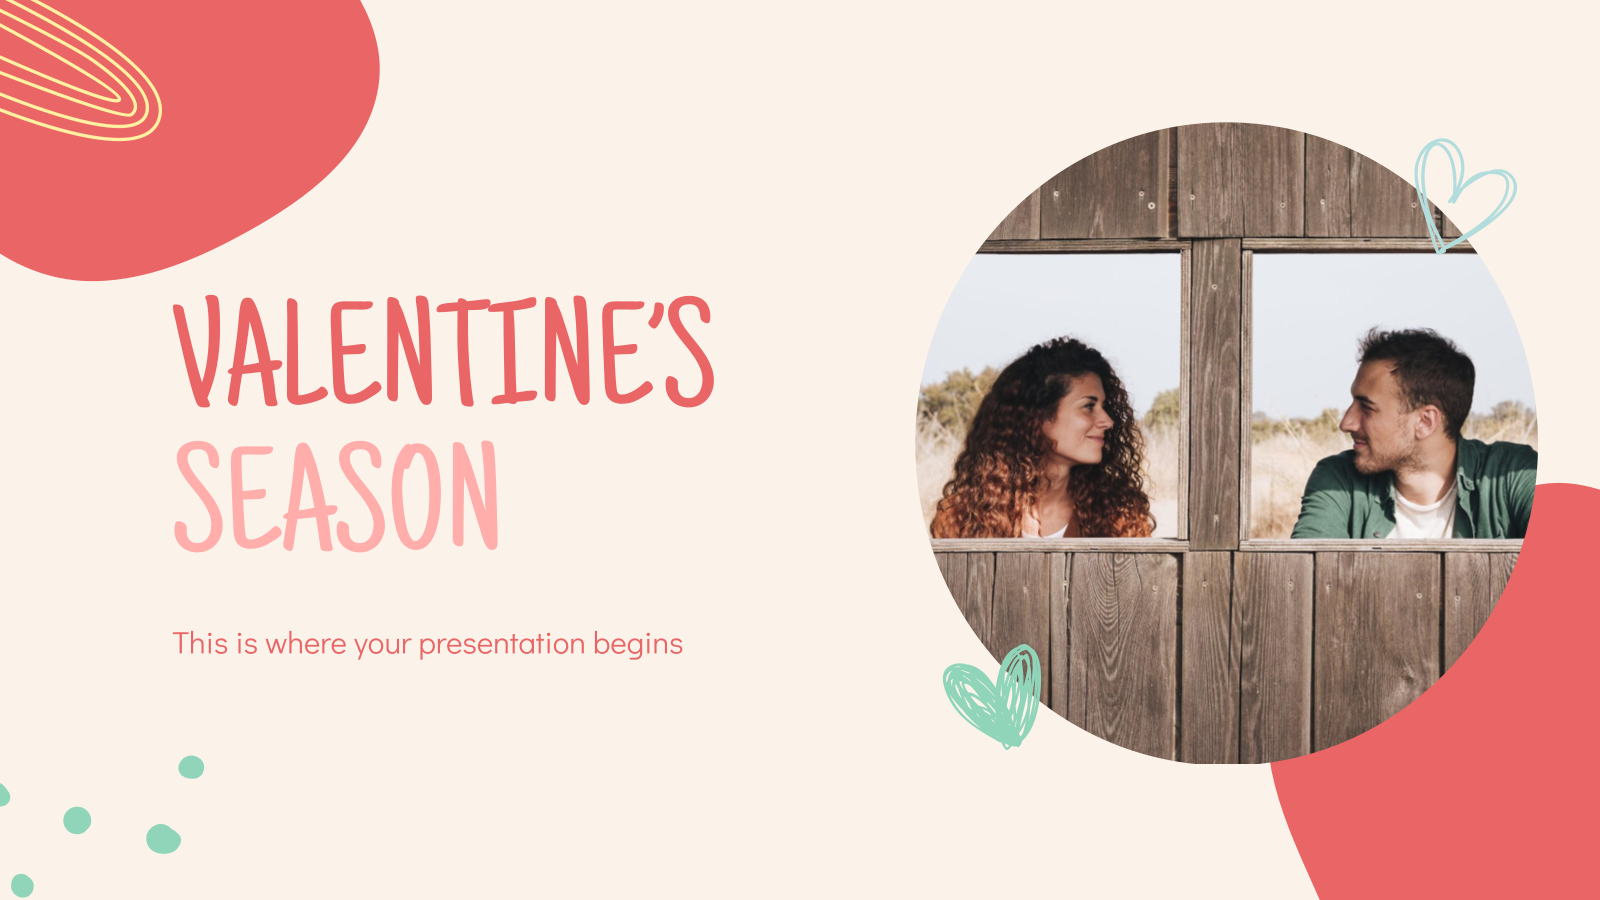 Valentine's Season presentation template